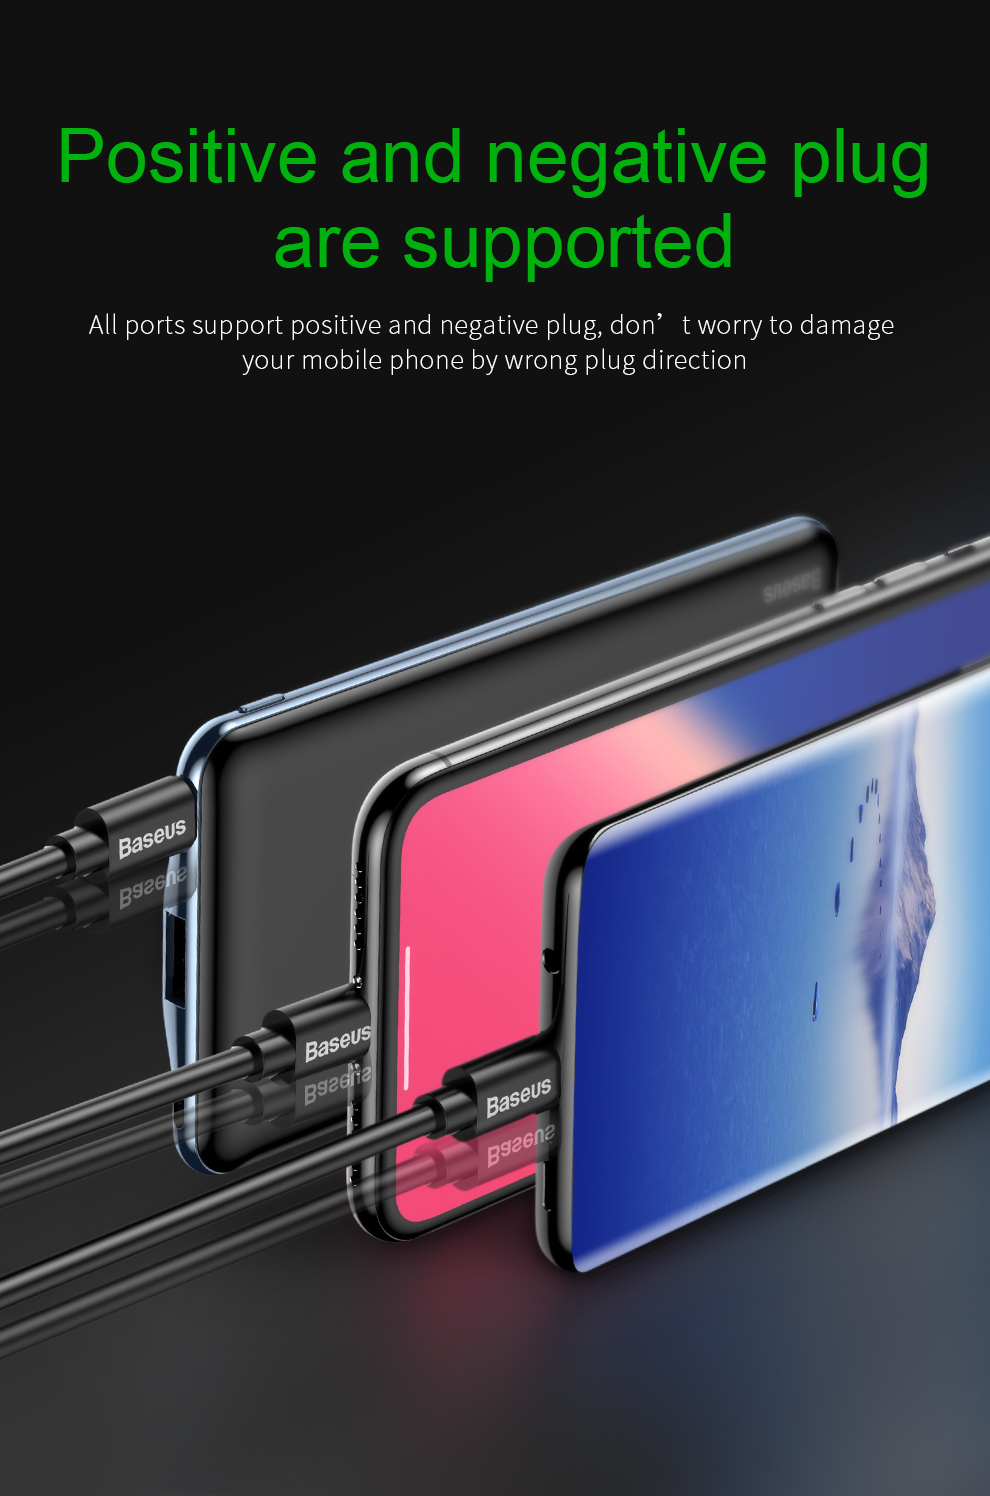 Baseus USB PD Fast Charging Power Bank For iPhone Xs Xs Max XR 18 X 8 8 Plus Powerbank 3A Quick Charge USB Type C Power Bank 7